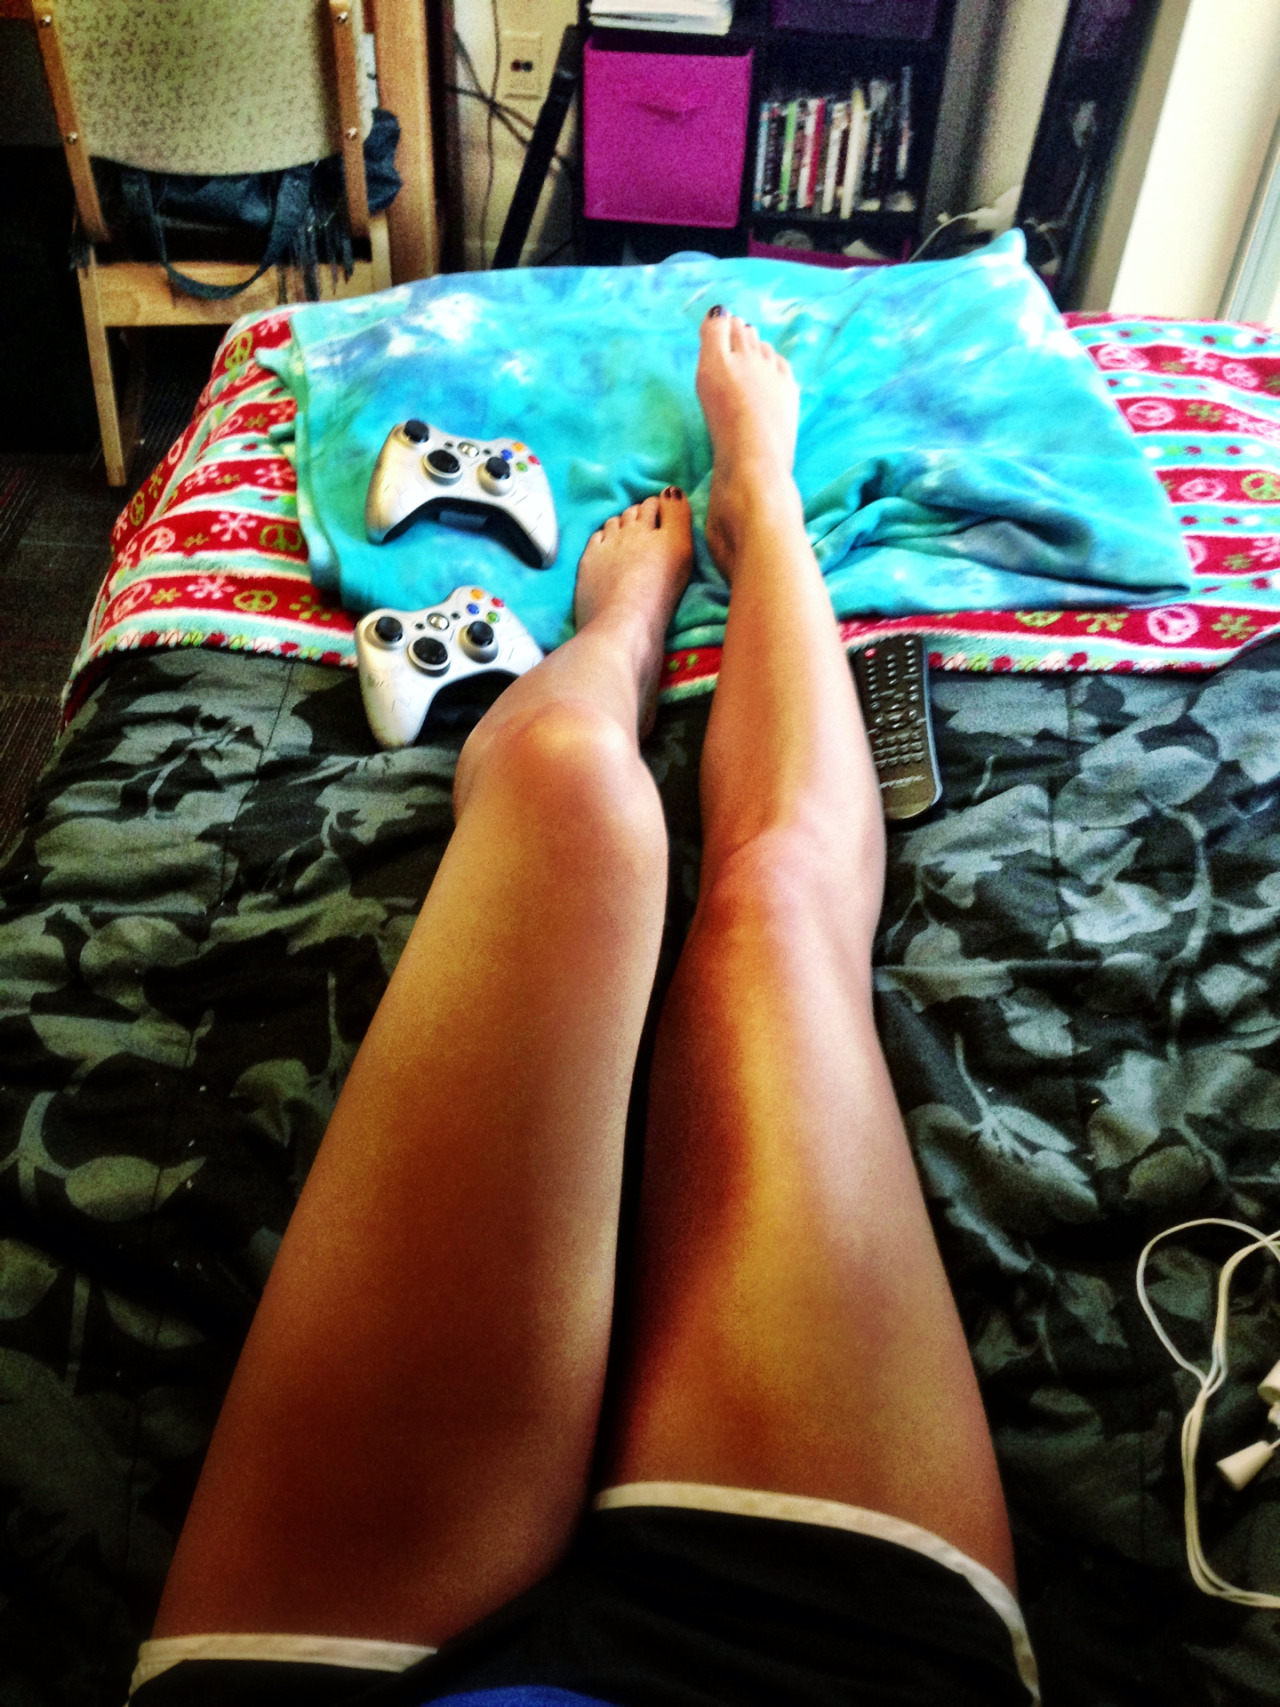 emilybreeny:  Dorm life…. Whaddup somewhat tan legs